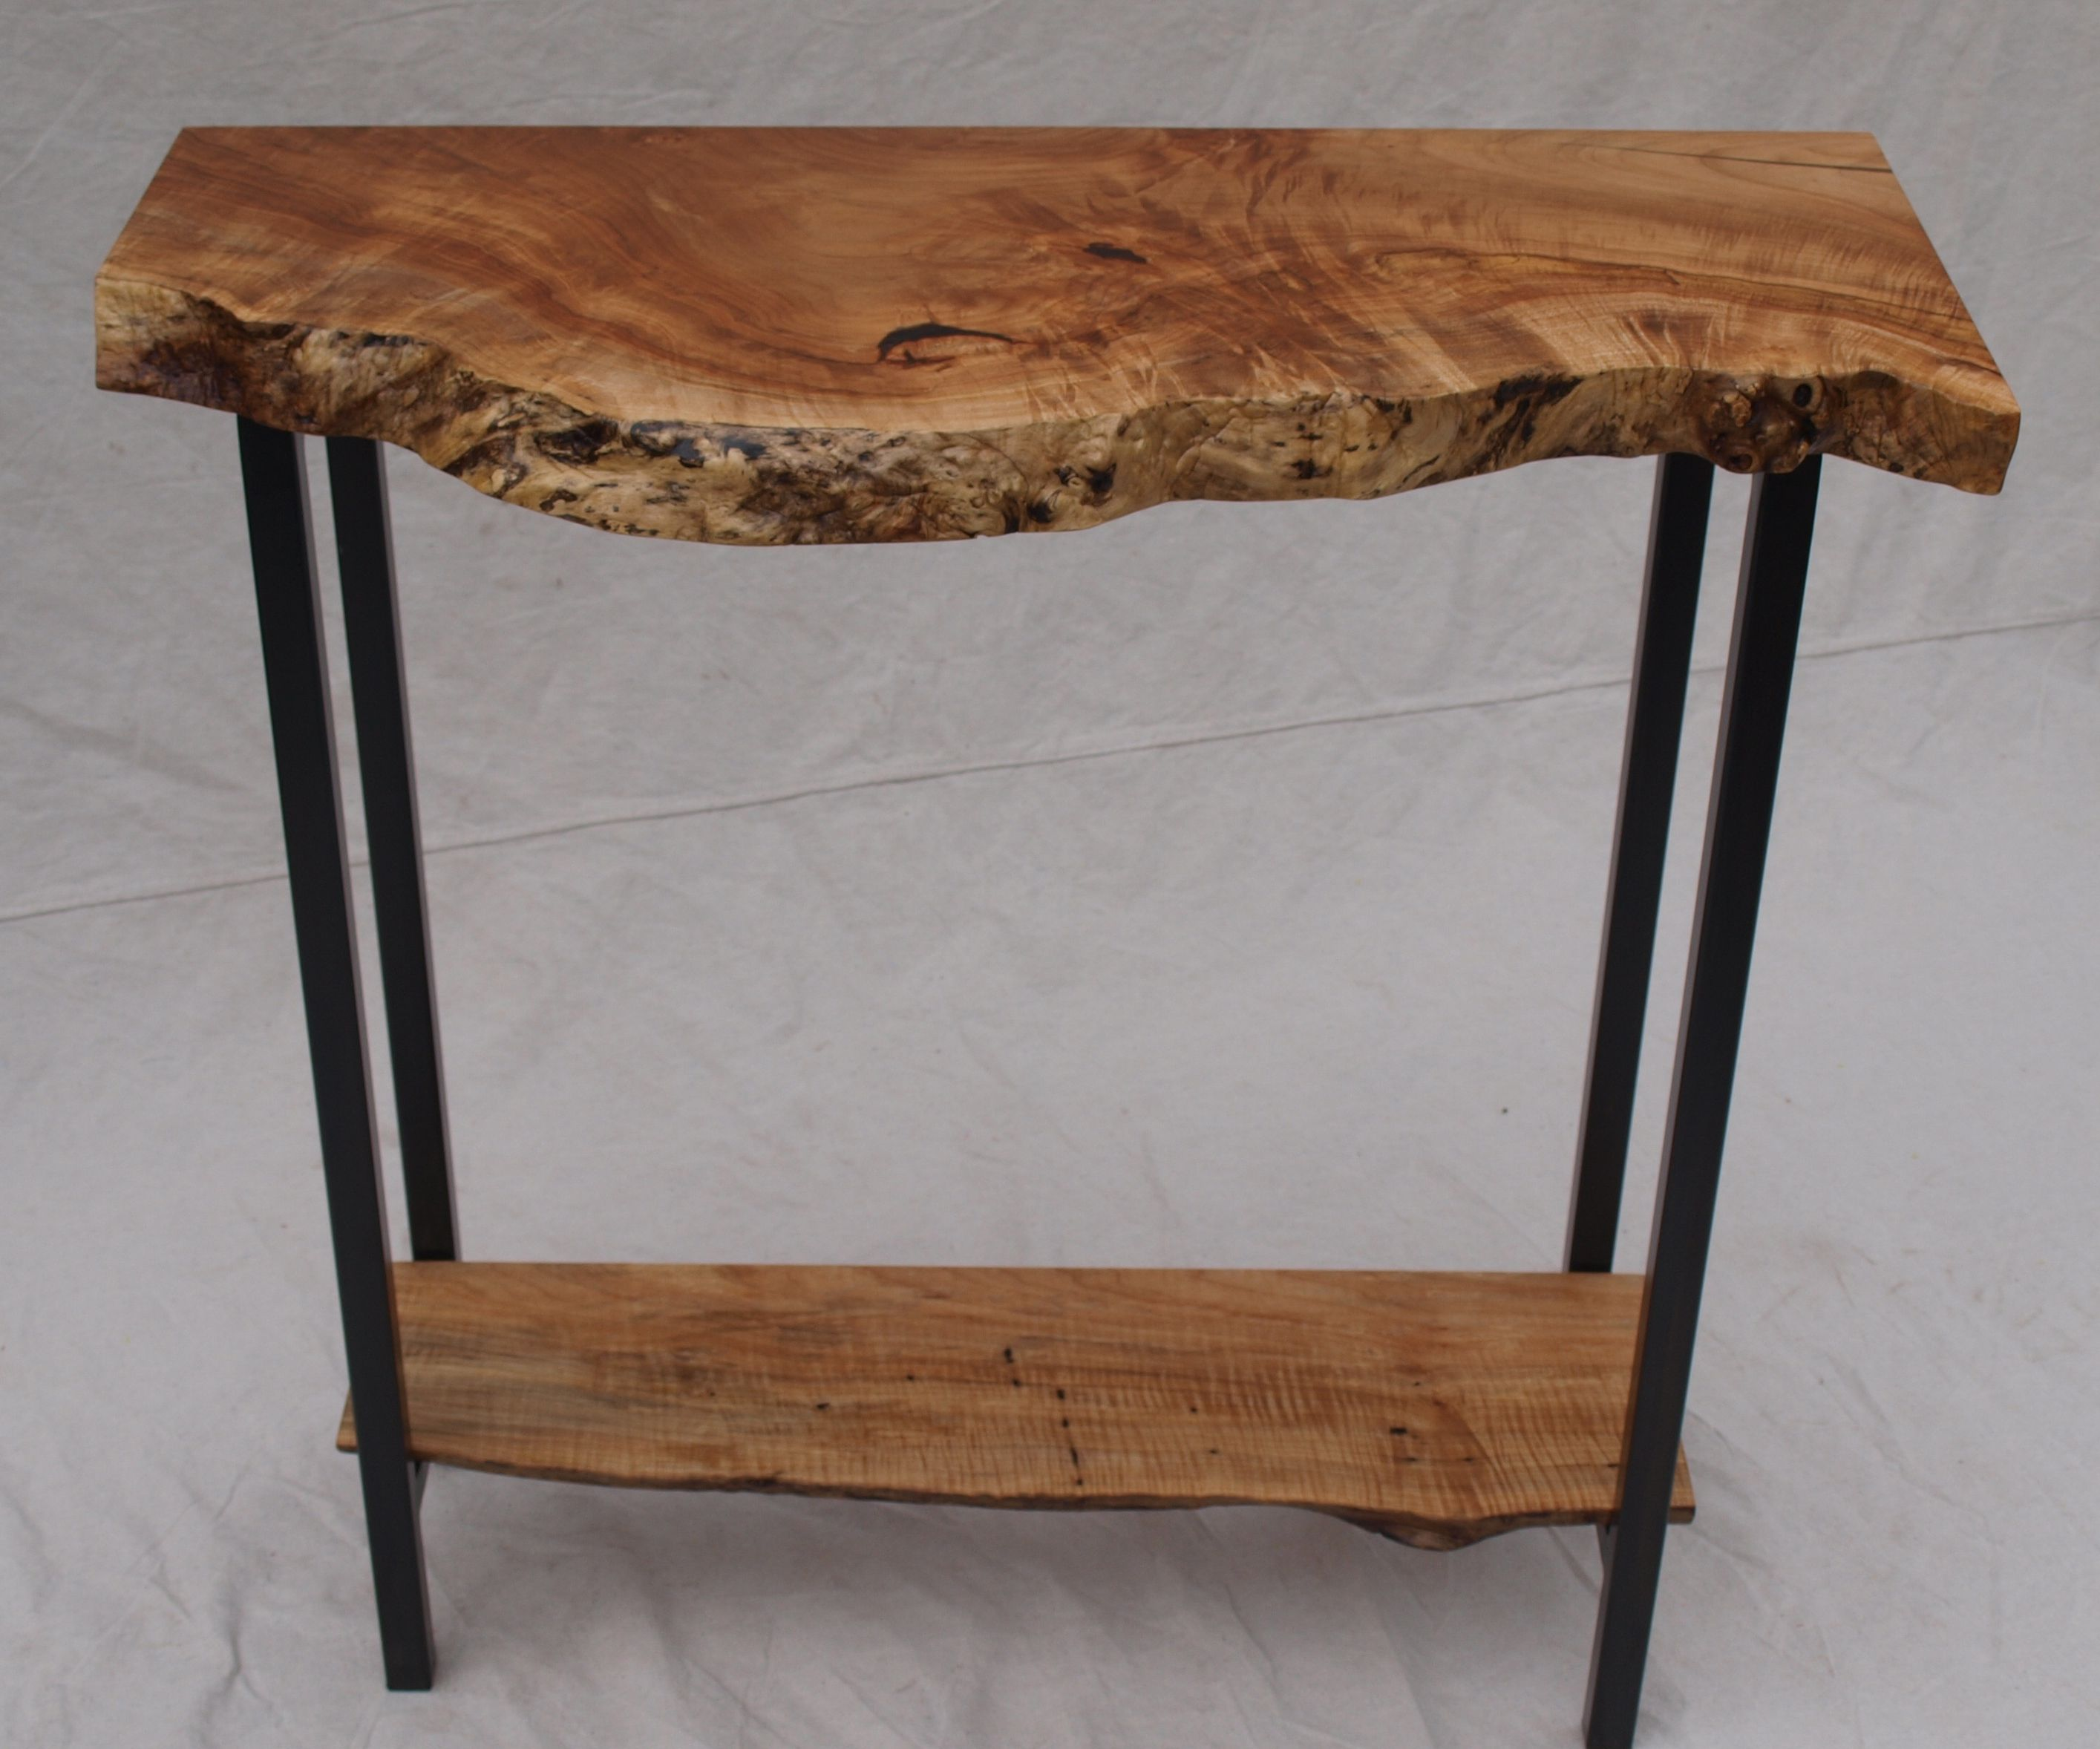 Buy a hand crafted live edge maple console table made to order custom made live edge maple console table geotapseo Gallery